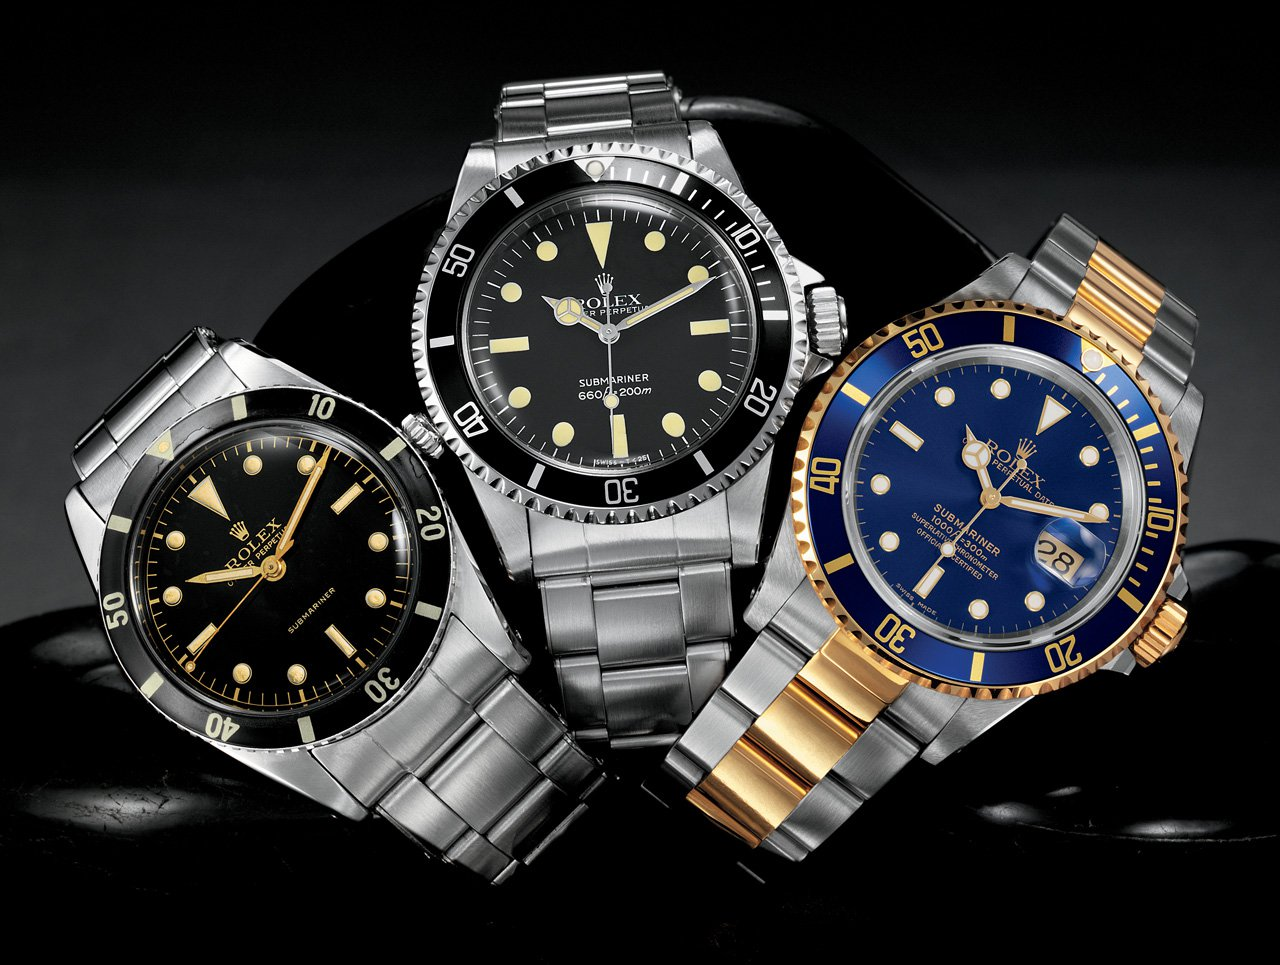 76 Rolex Wallpaper On Wallpapersafari